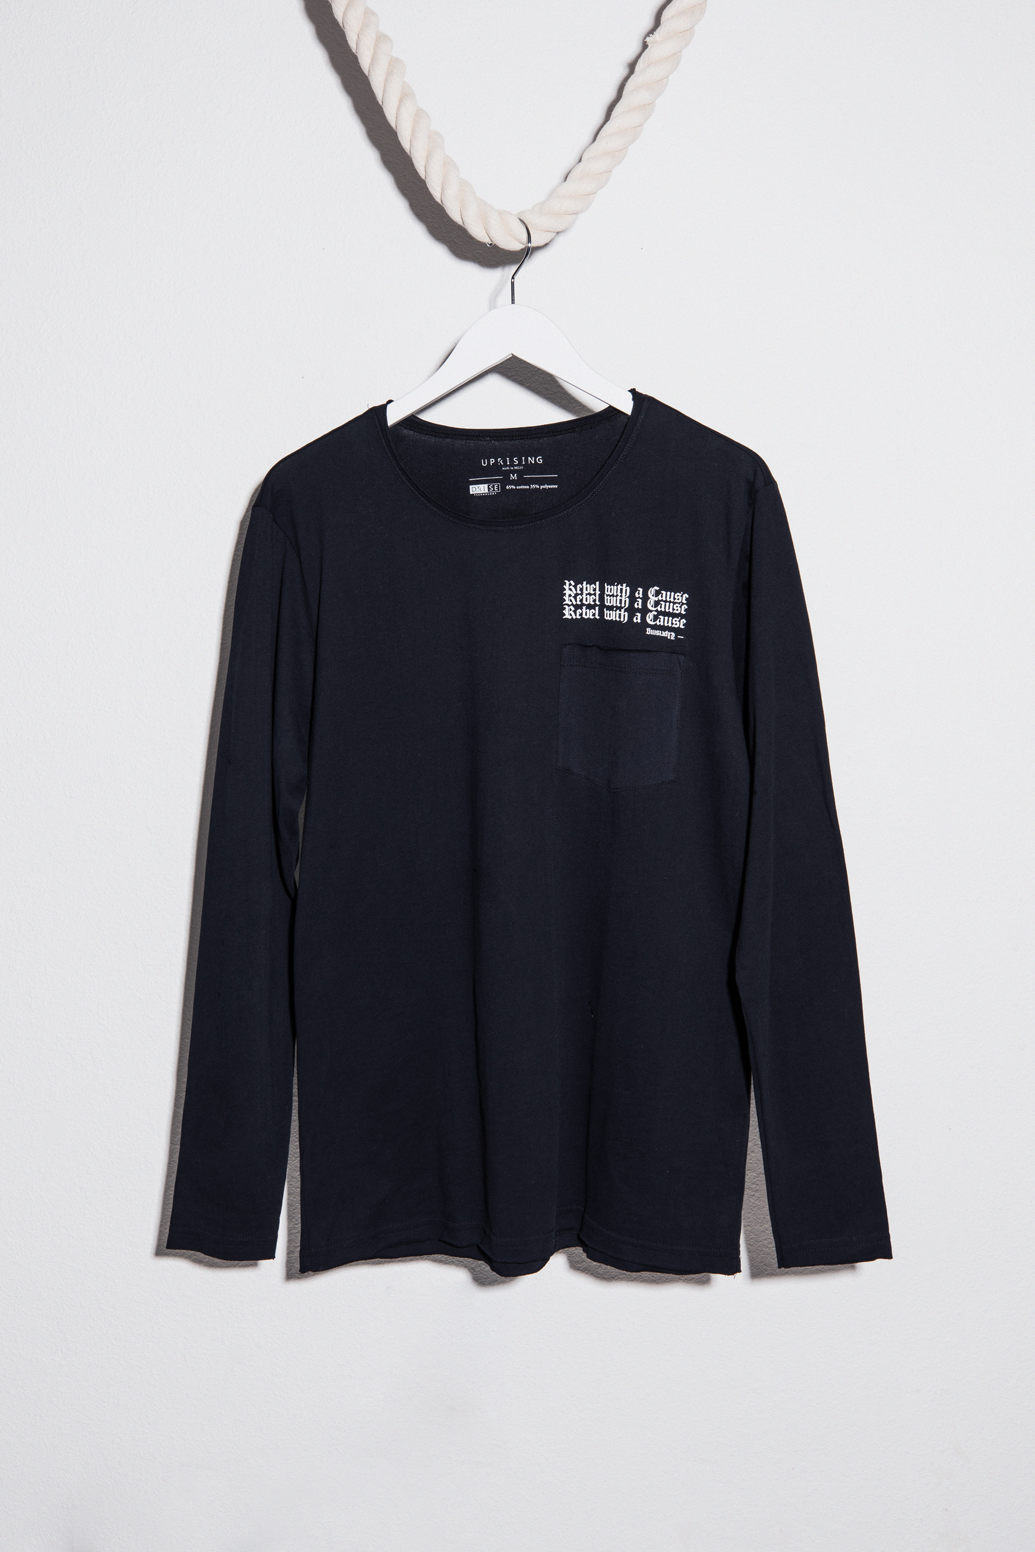 Rebel With A Cause Raw Edge Pocket Long Sleeve